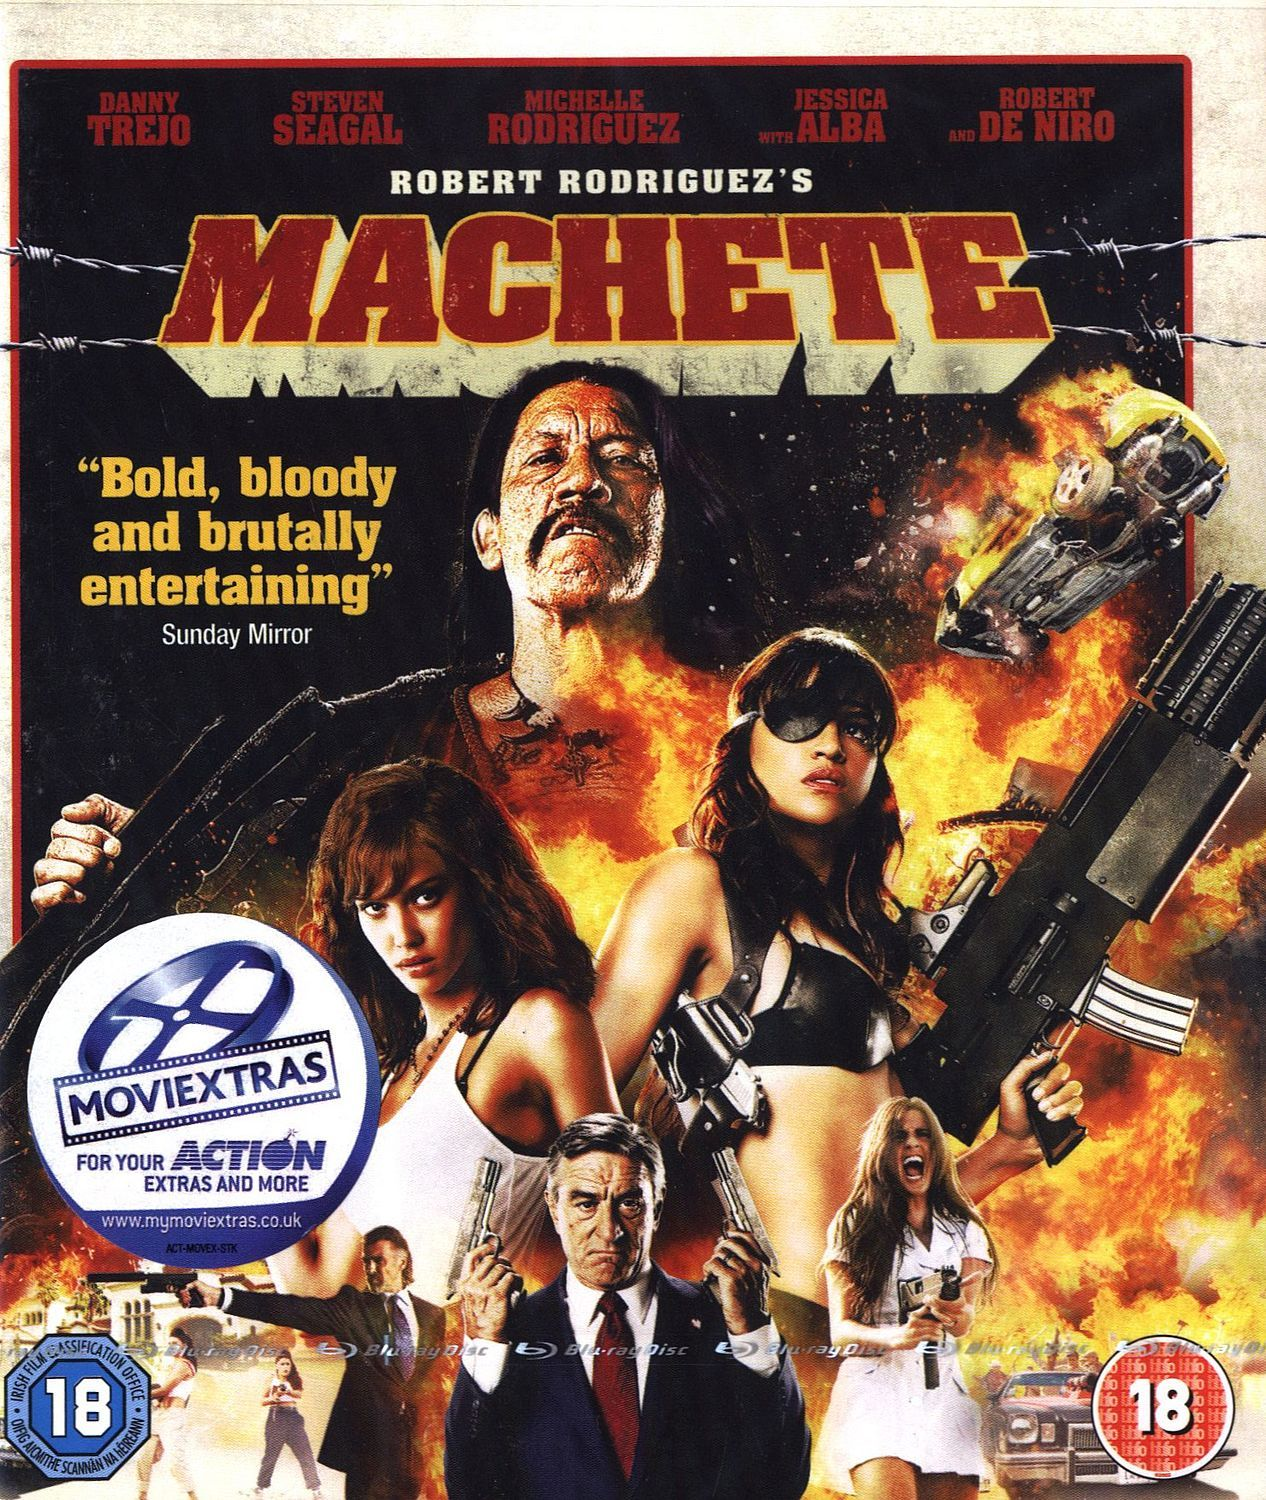 Machete (Blu-Ray) - 1